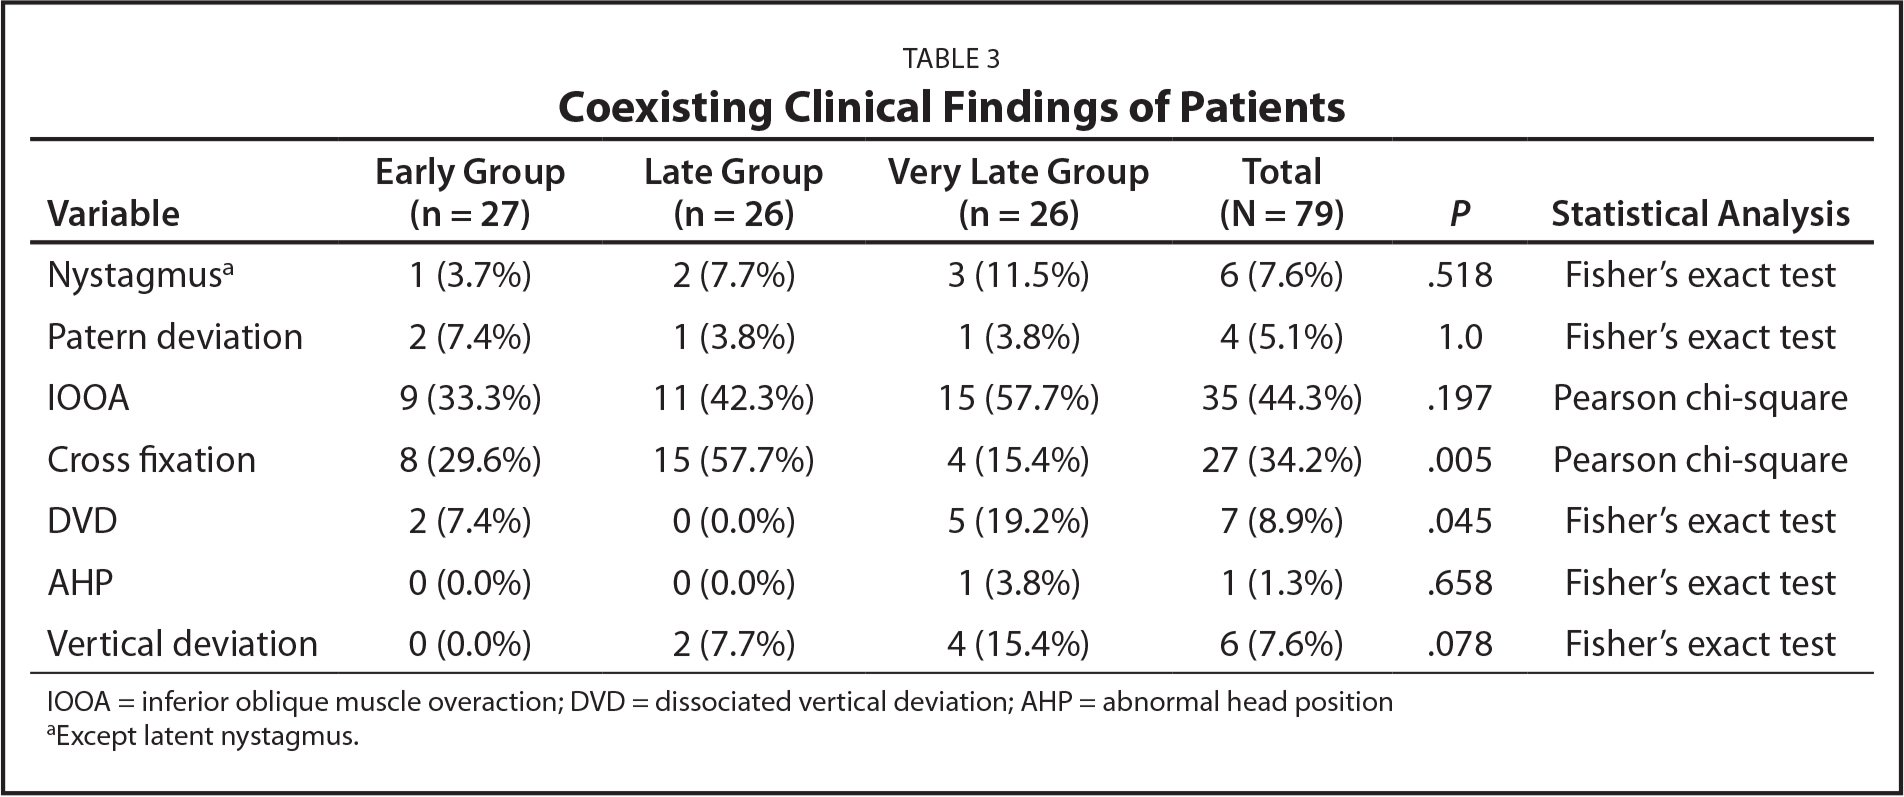 Coexisting Clinical Findings of Patients